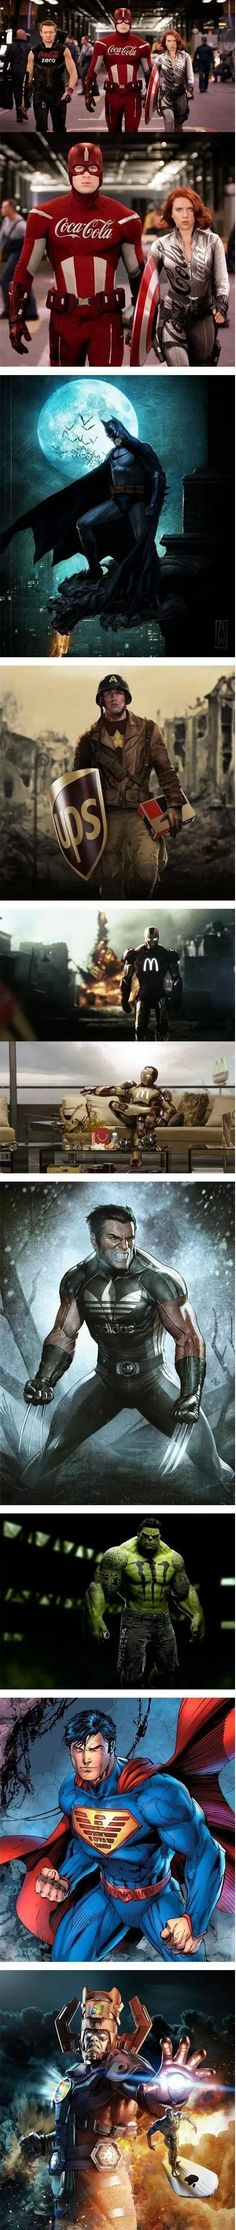 If superheros had sponsors  // funny pictures - funny photos - funny images - funny pics - funny quotes - #lol #humor #funnypictures